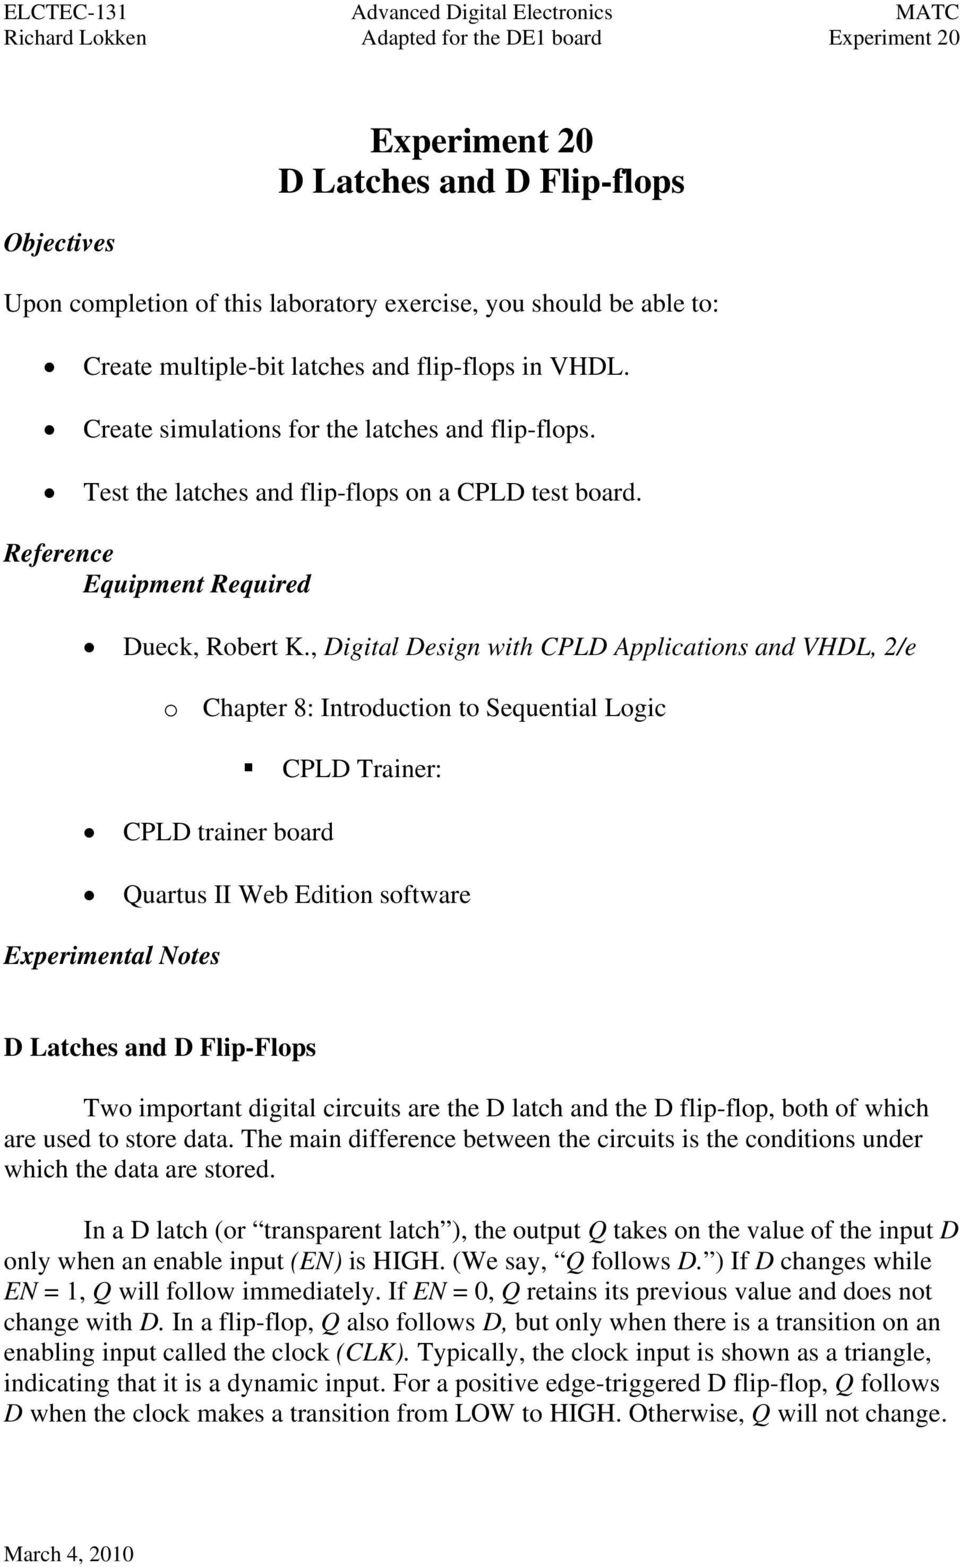 Experiment 20 D Latches And Flip Flops Pdf Flop In Addition 3 Bit Counter On Circuit Digital Design With Cpld Applications Vhdl 2 E O Chapter 8 Introduction Figure 201